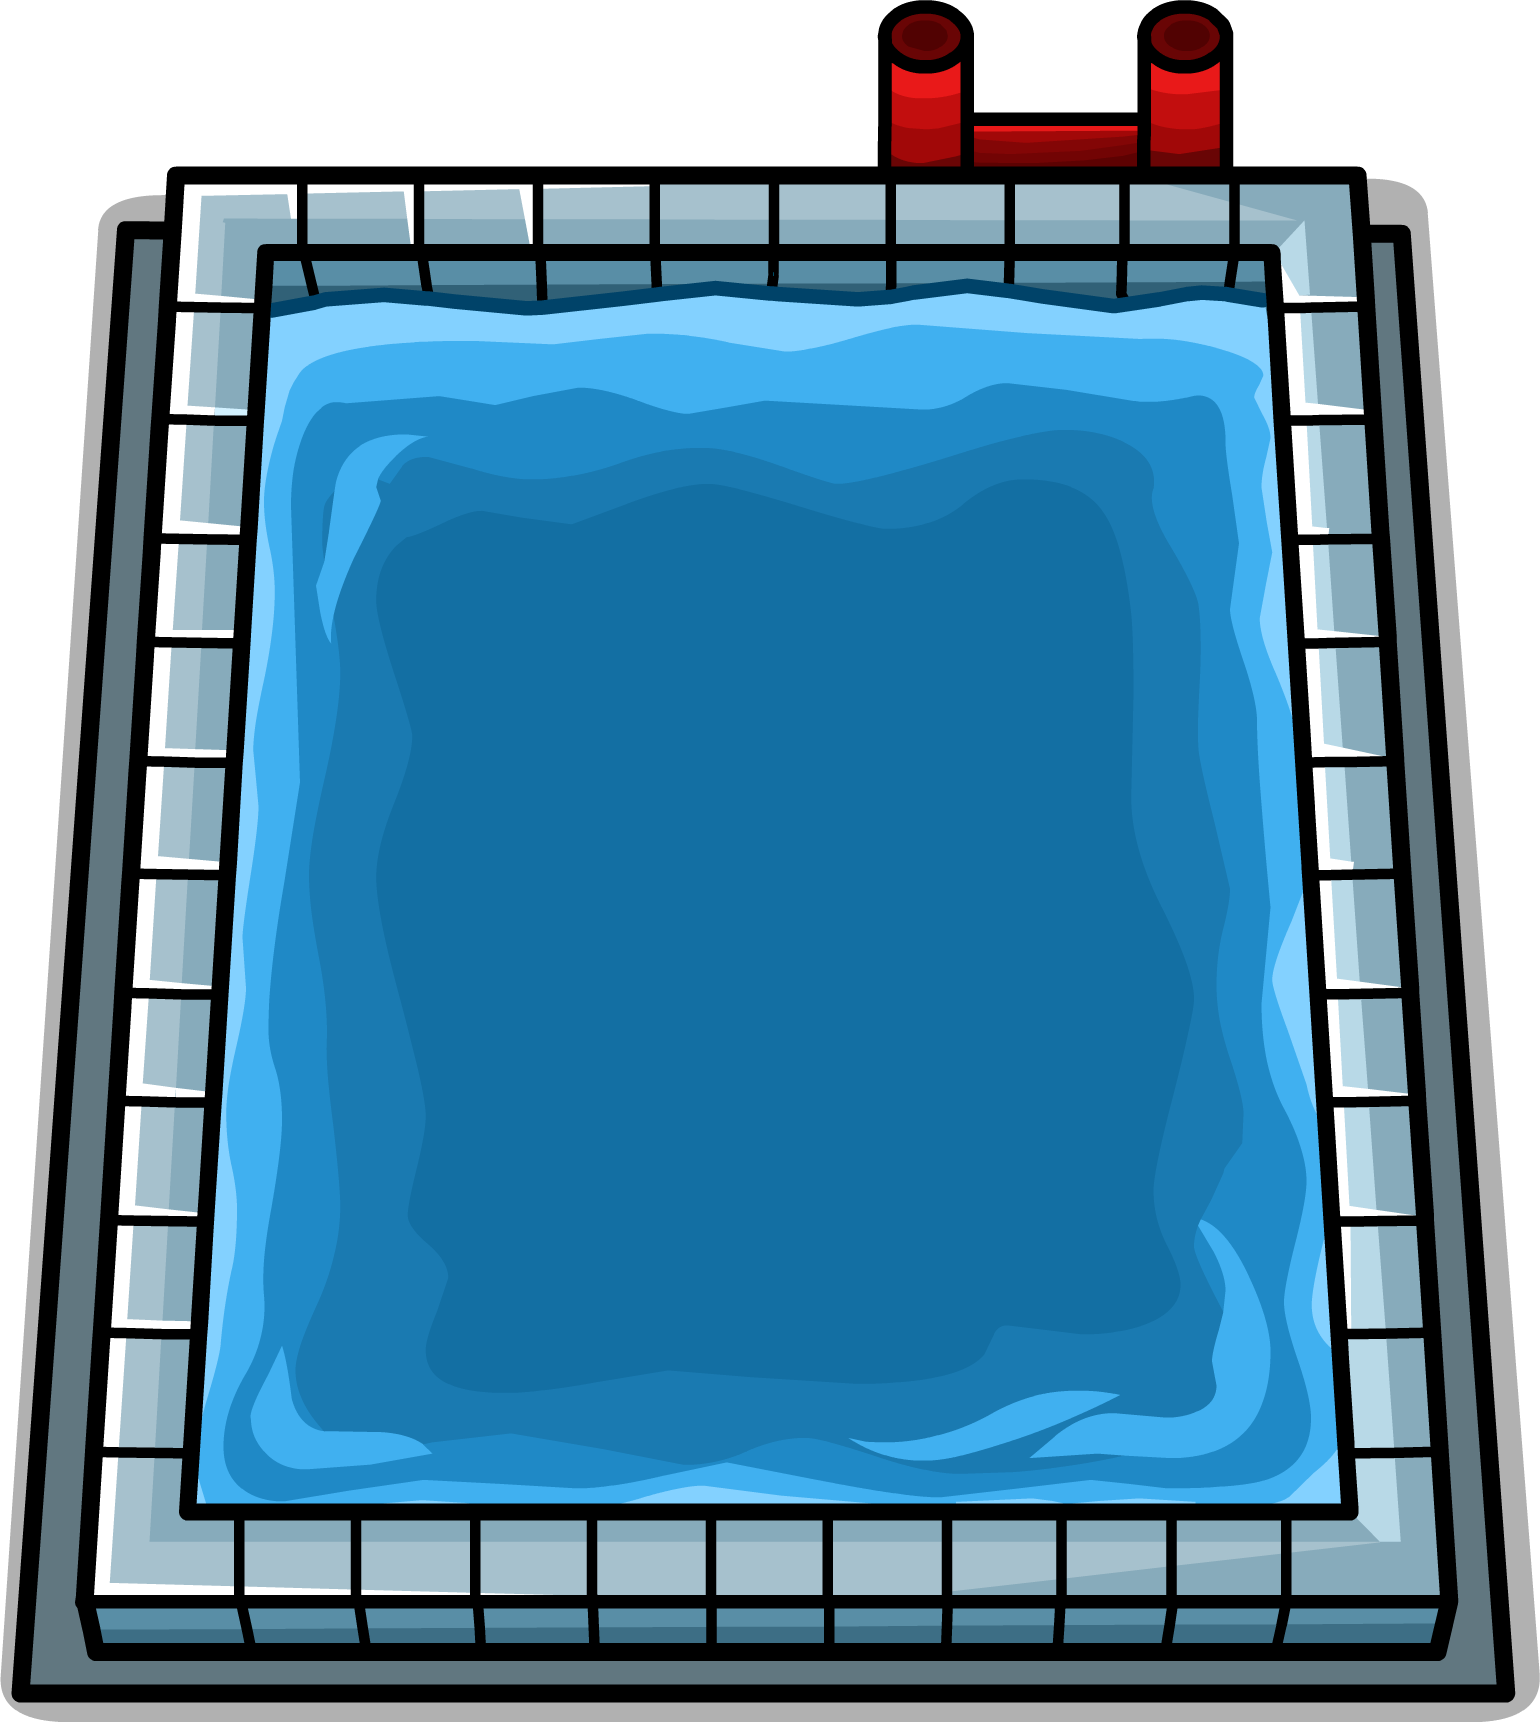 House pool clipart clip art royalty free Swimming Pool Clipart Group (53+) clip art royalty free